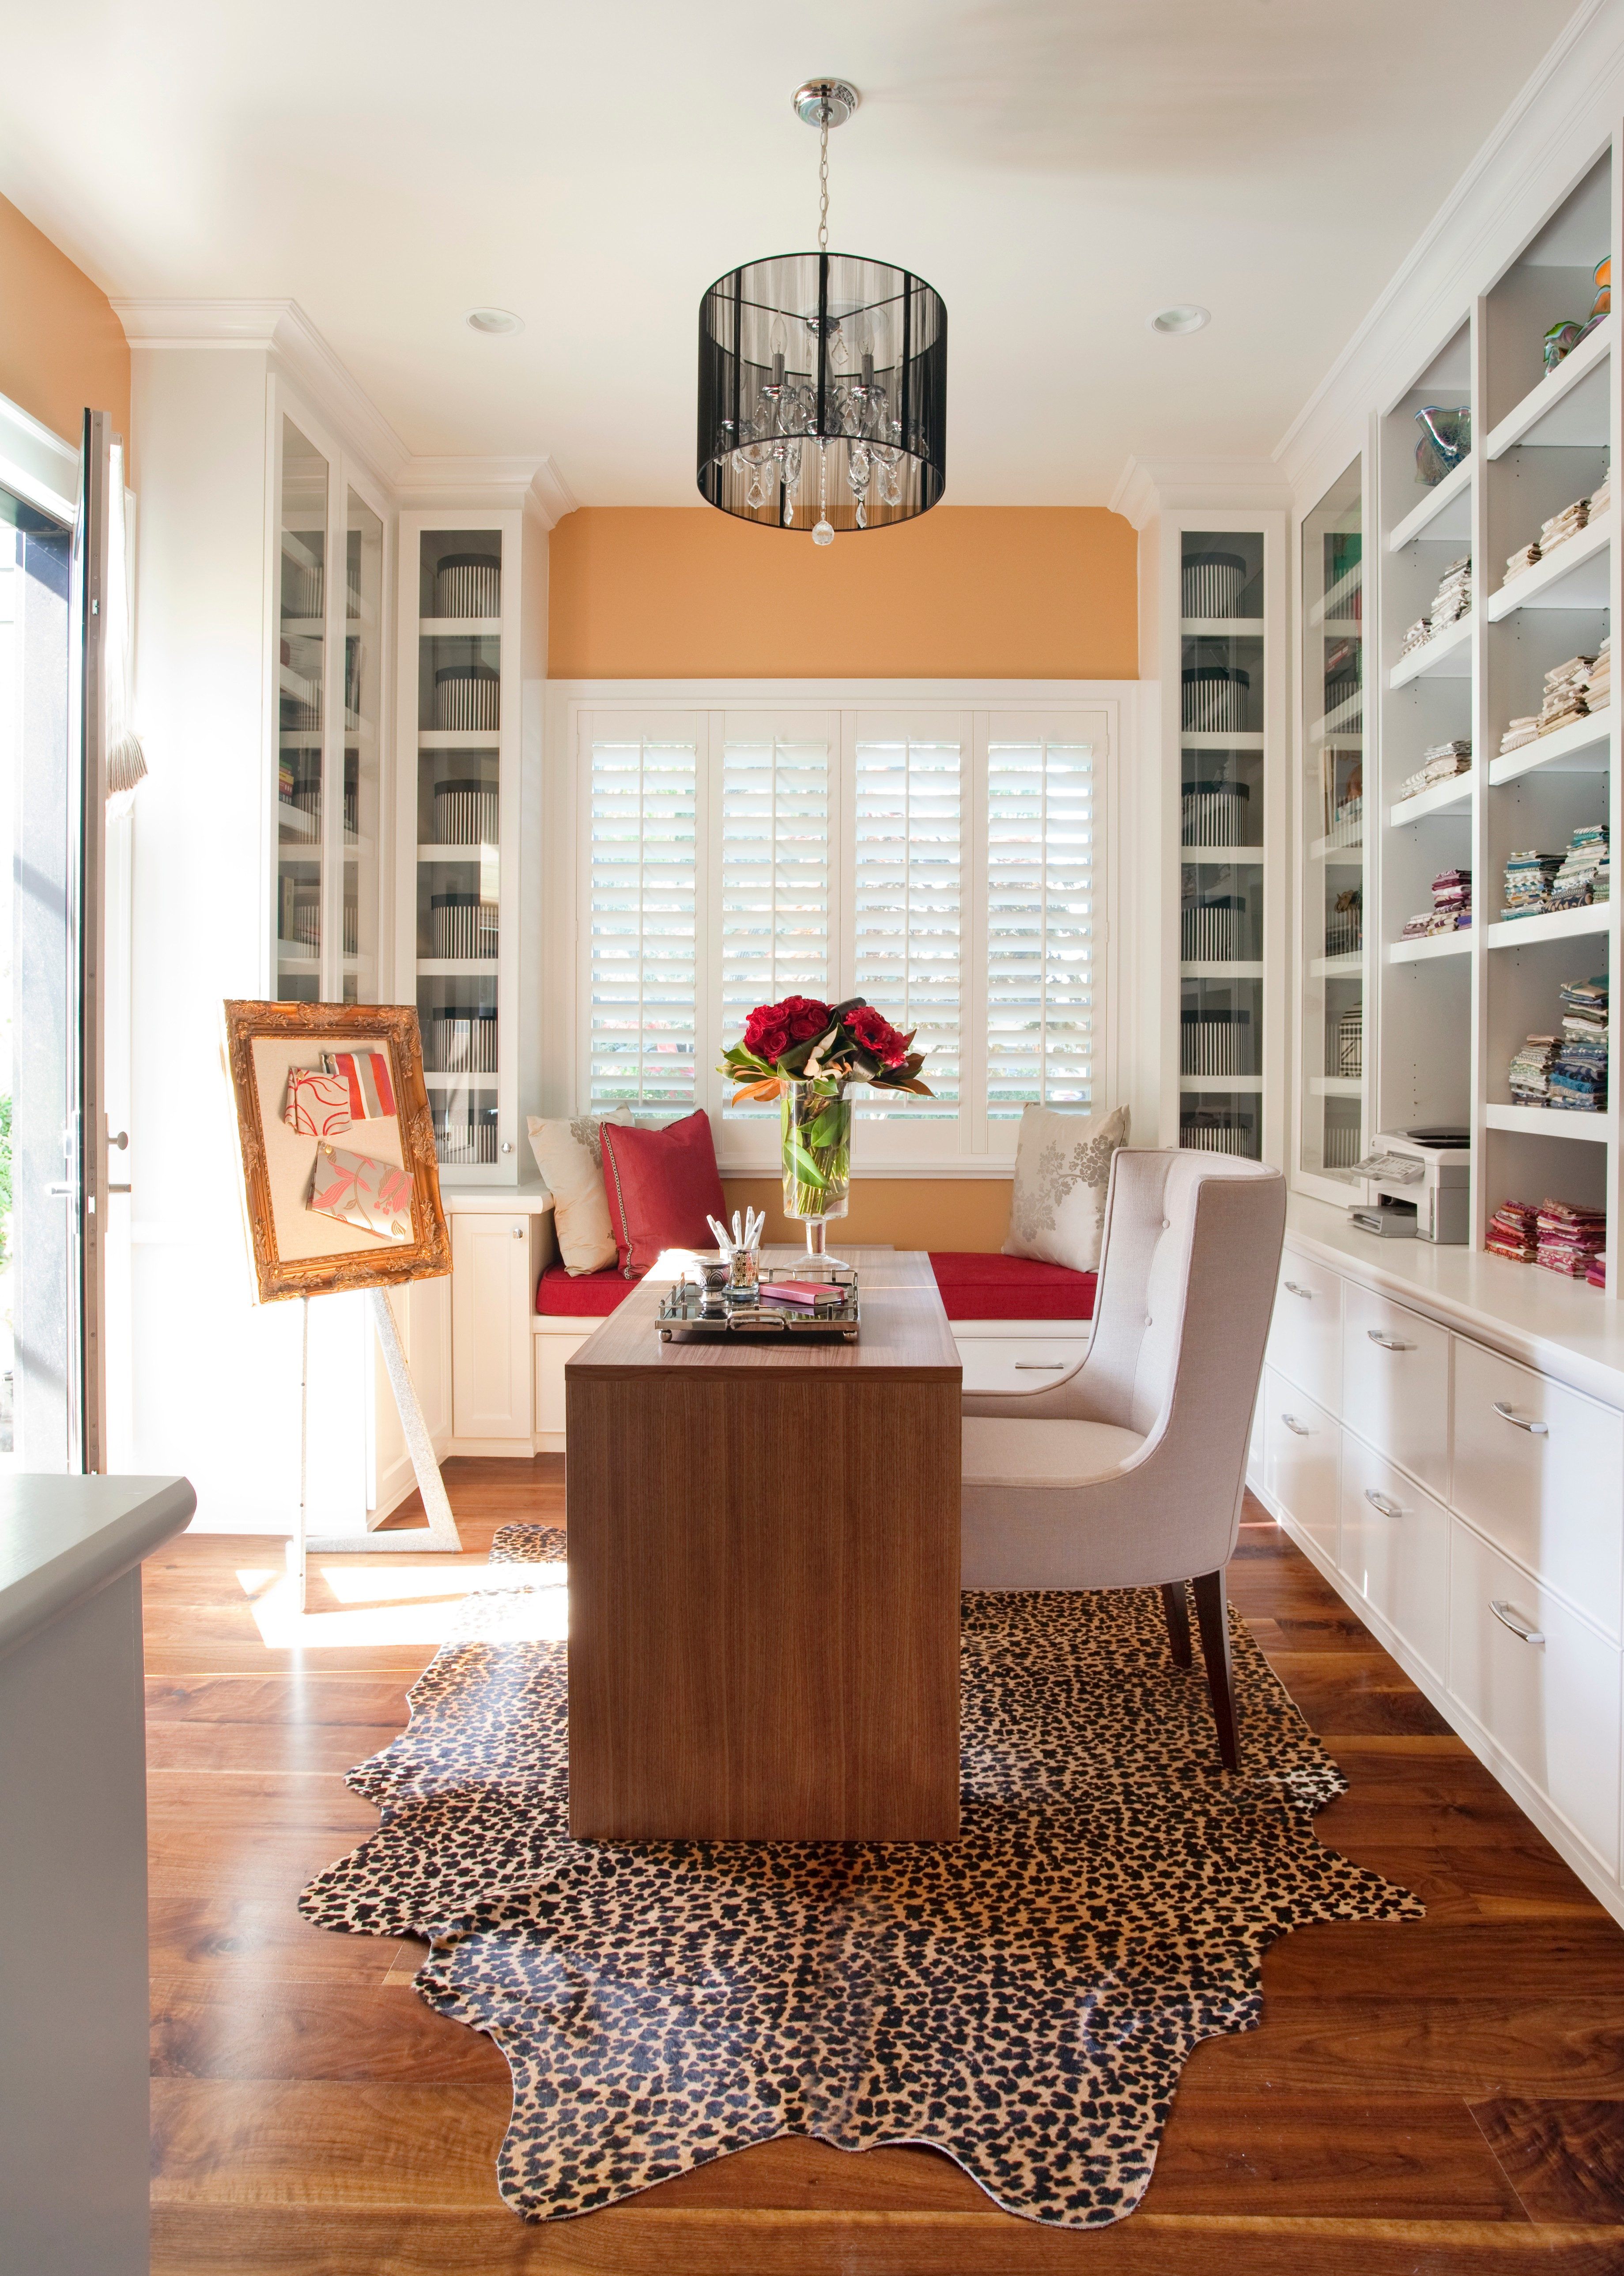 Surprising 11 Gorgeous Home Office Ideas To Inspire Your Spare Room Refresh Largest Home Design Picture Inspirations Pitcheantrous